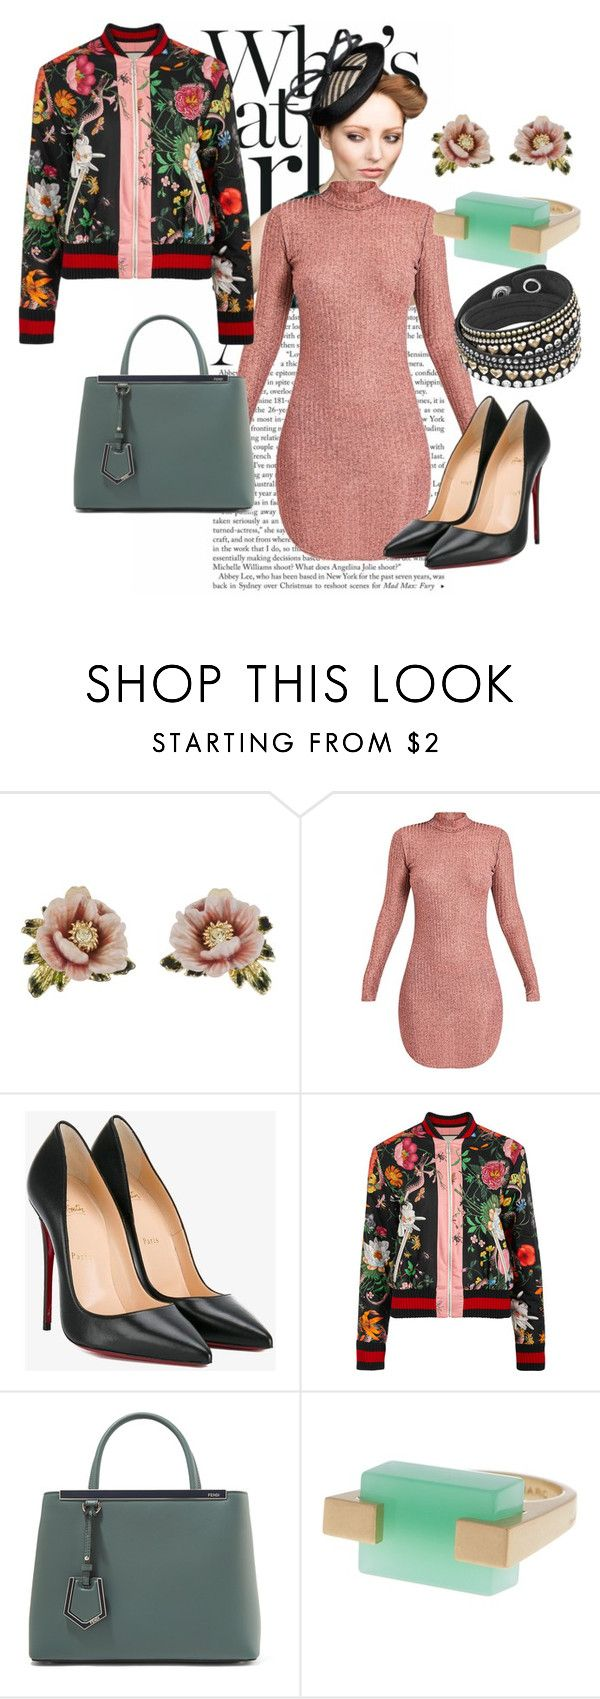 """""""Day to night"""" by katherineew ❤ liked on Polyvore featuring Rachel Trevor-Morgan, Les Néréides, Christian Louboutin, Gucci, Fendi and Marc by Marc Jacobs"""